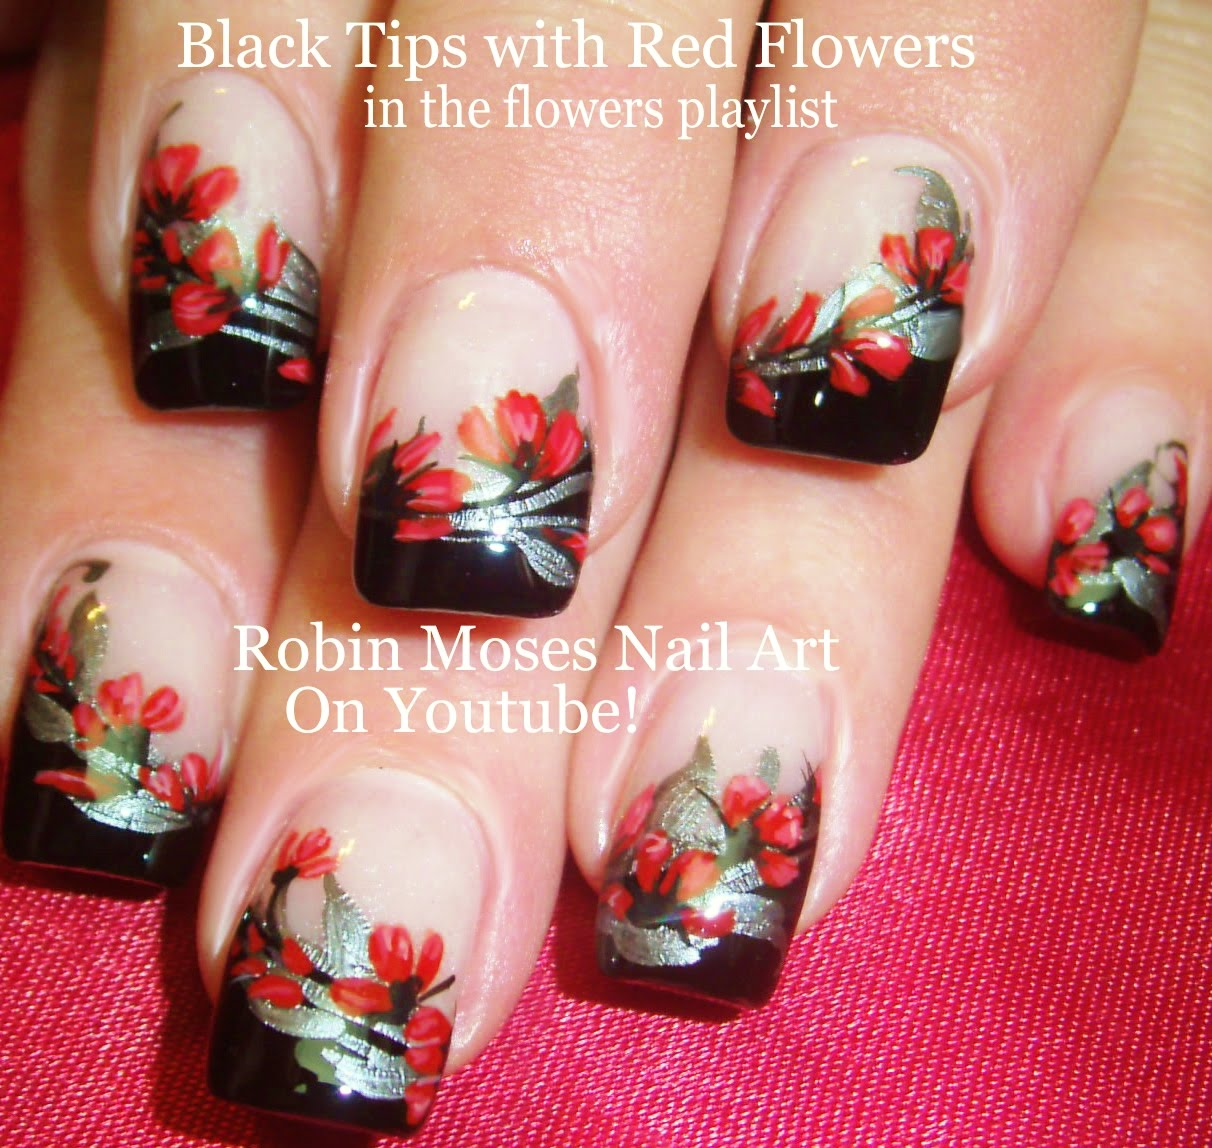 Show off your nail art skills with this gorgeous gothic floral show off your nail art skills with this gorgeous gothic floral nail design prinsesfo Gallery